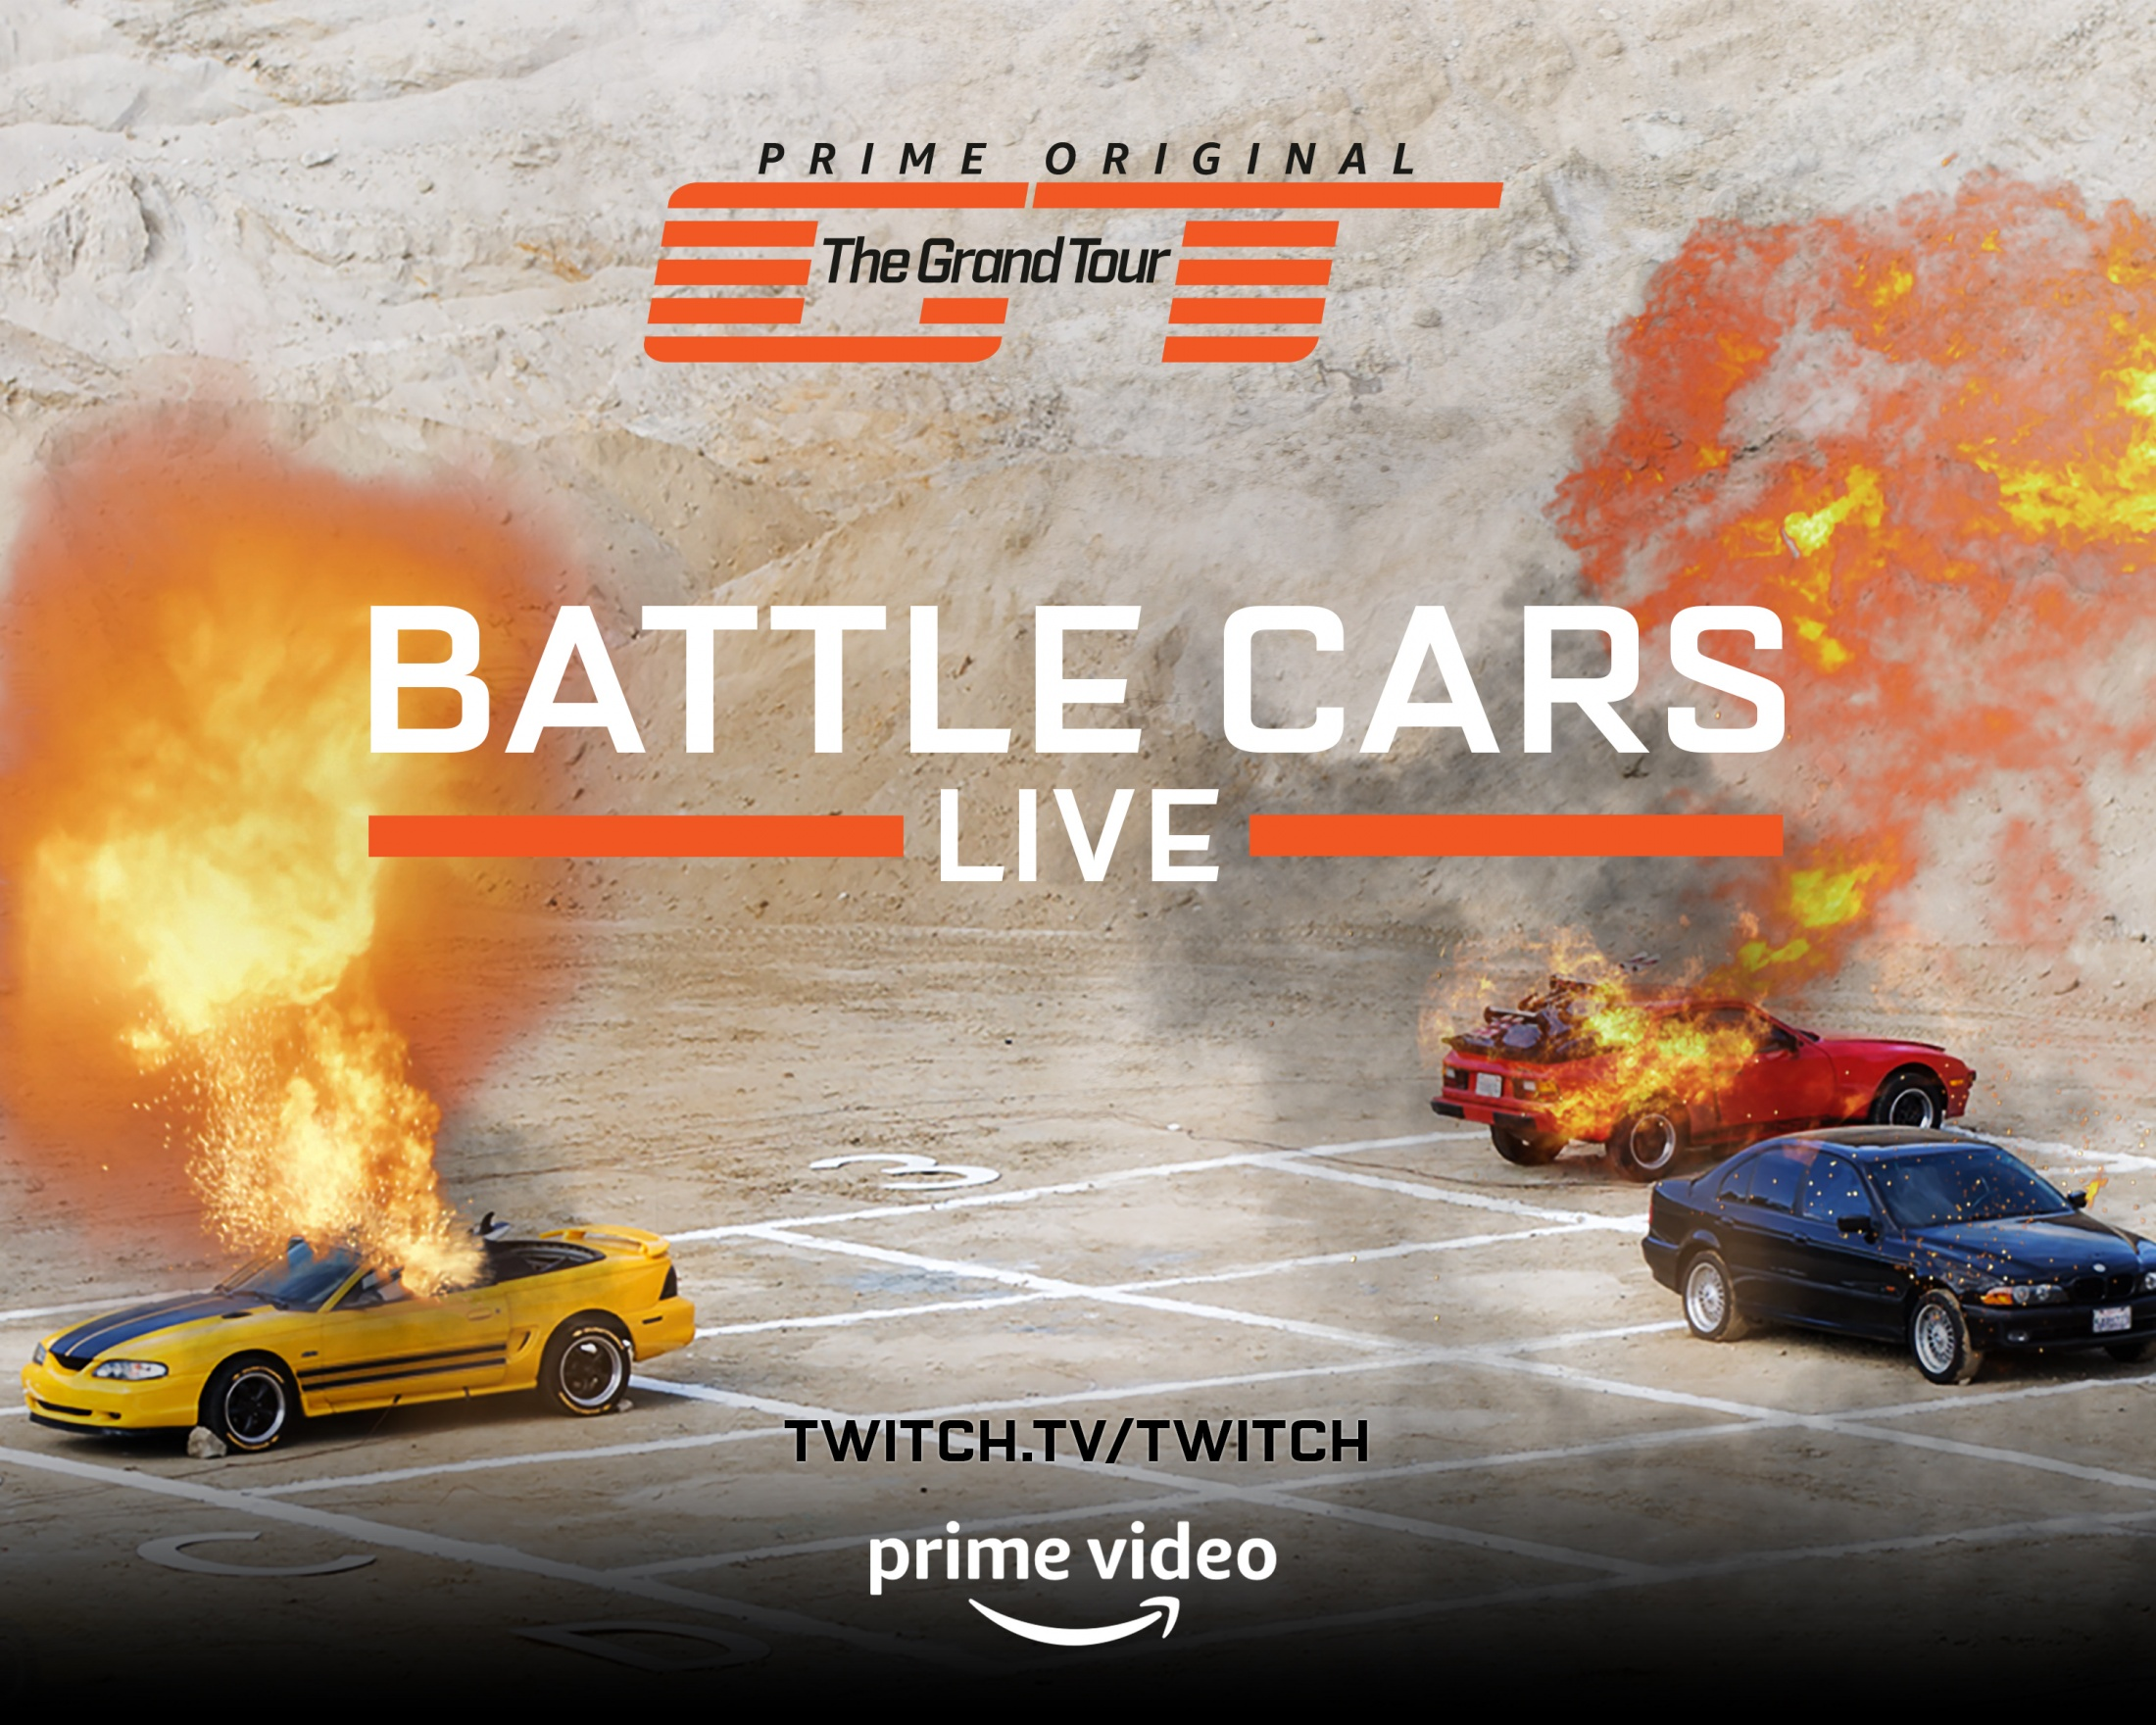 Thumbnail for The Grand Tour Season 2: Battle Cars Live